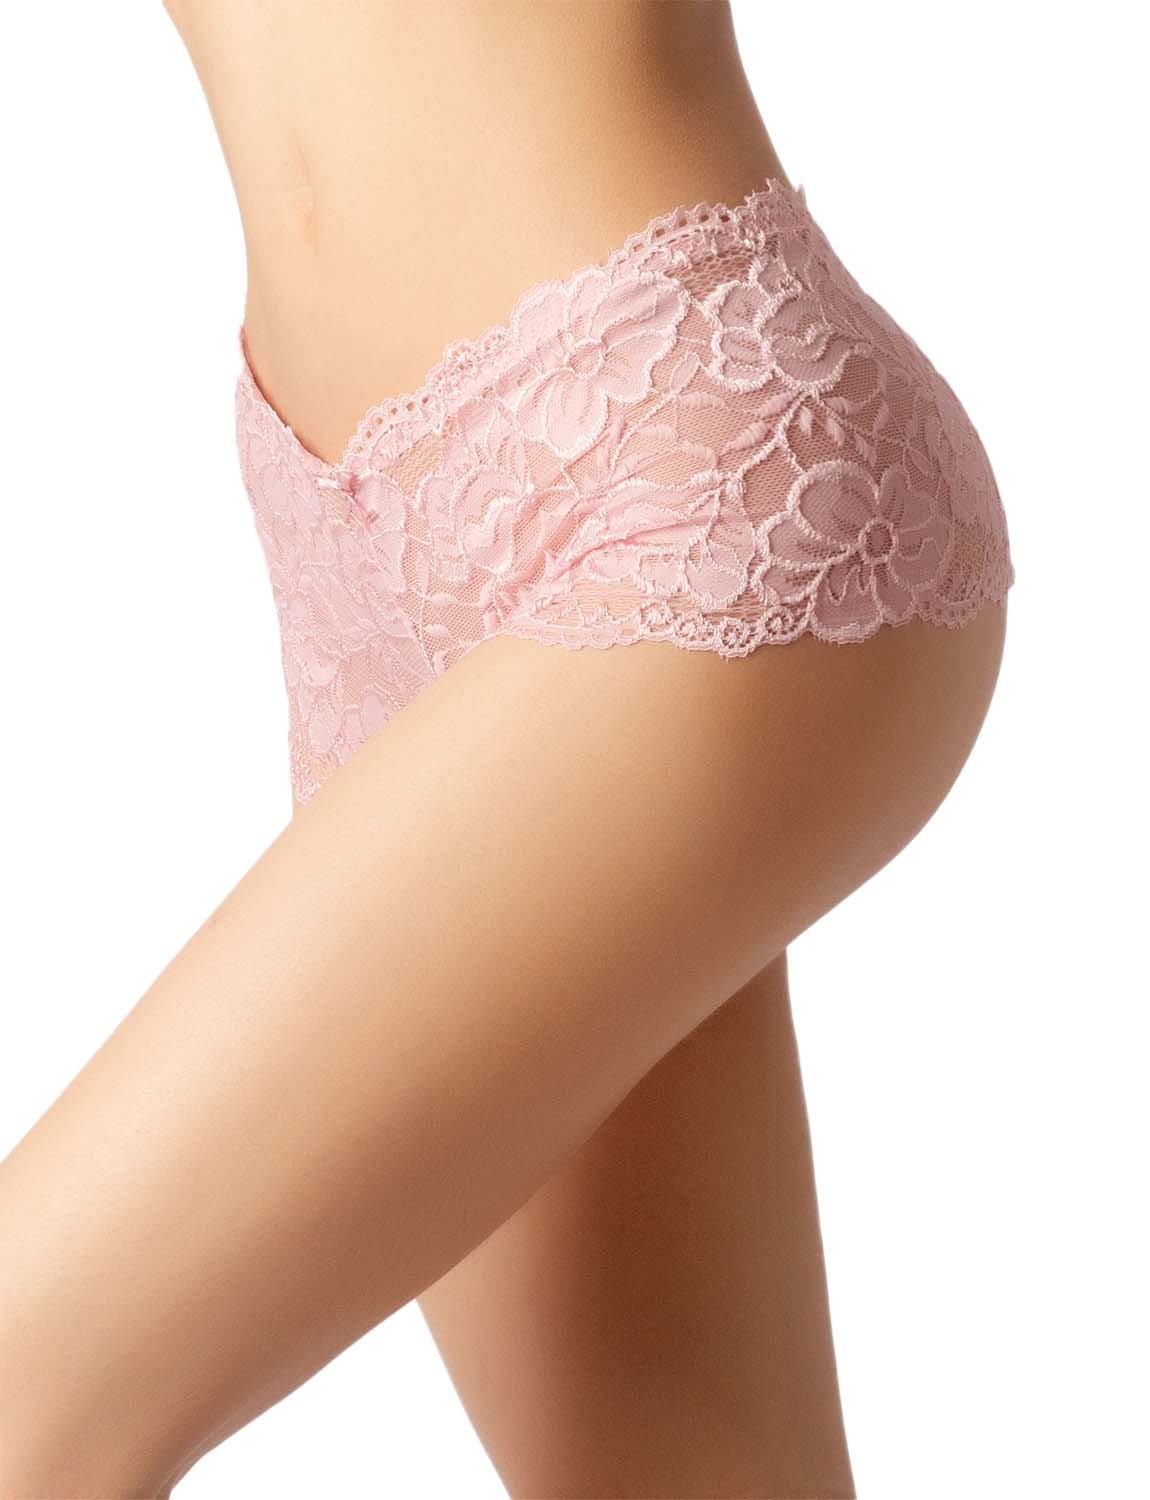 Women's Lace Mesh See-Through Breathable Underwear Low Rise Hipster Panty, Size: 2XL, Pale Pink